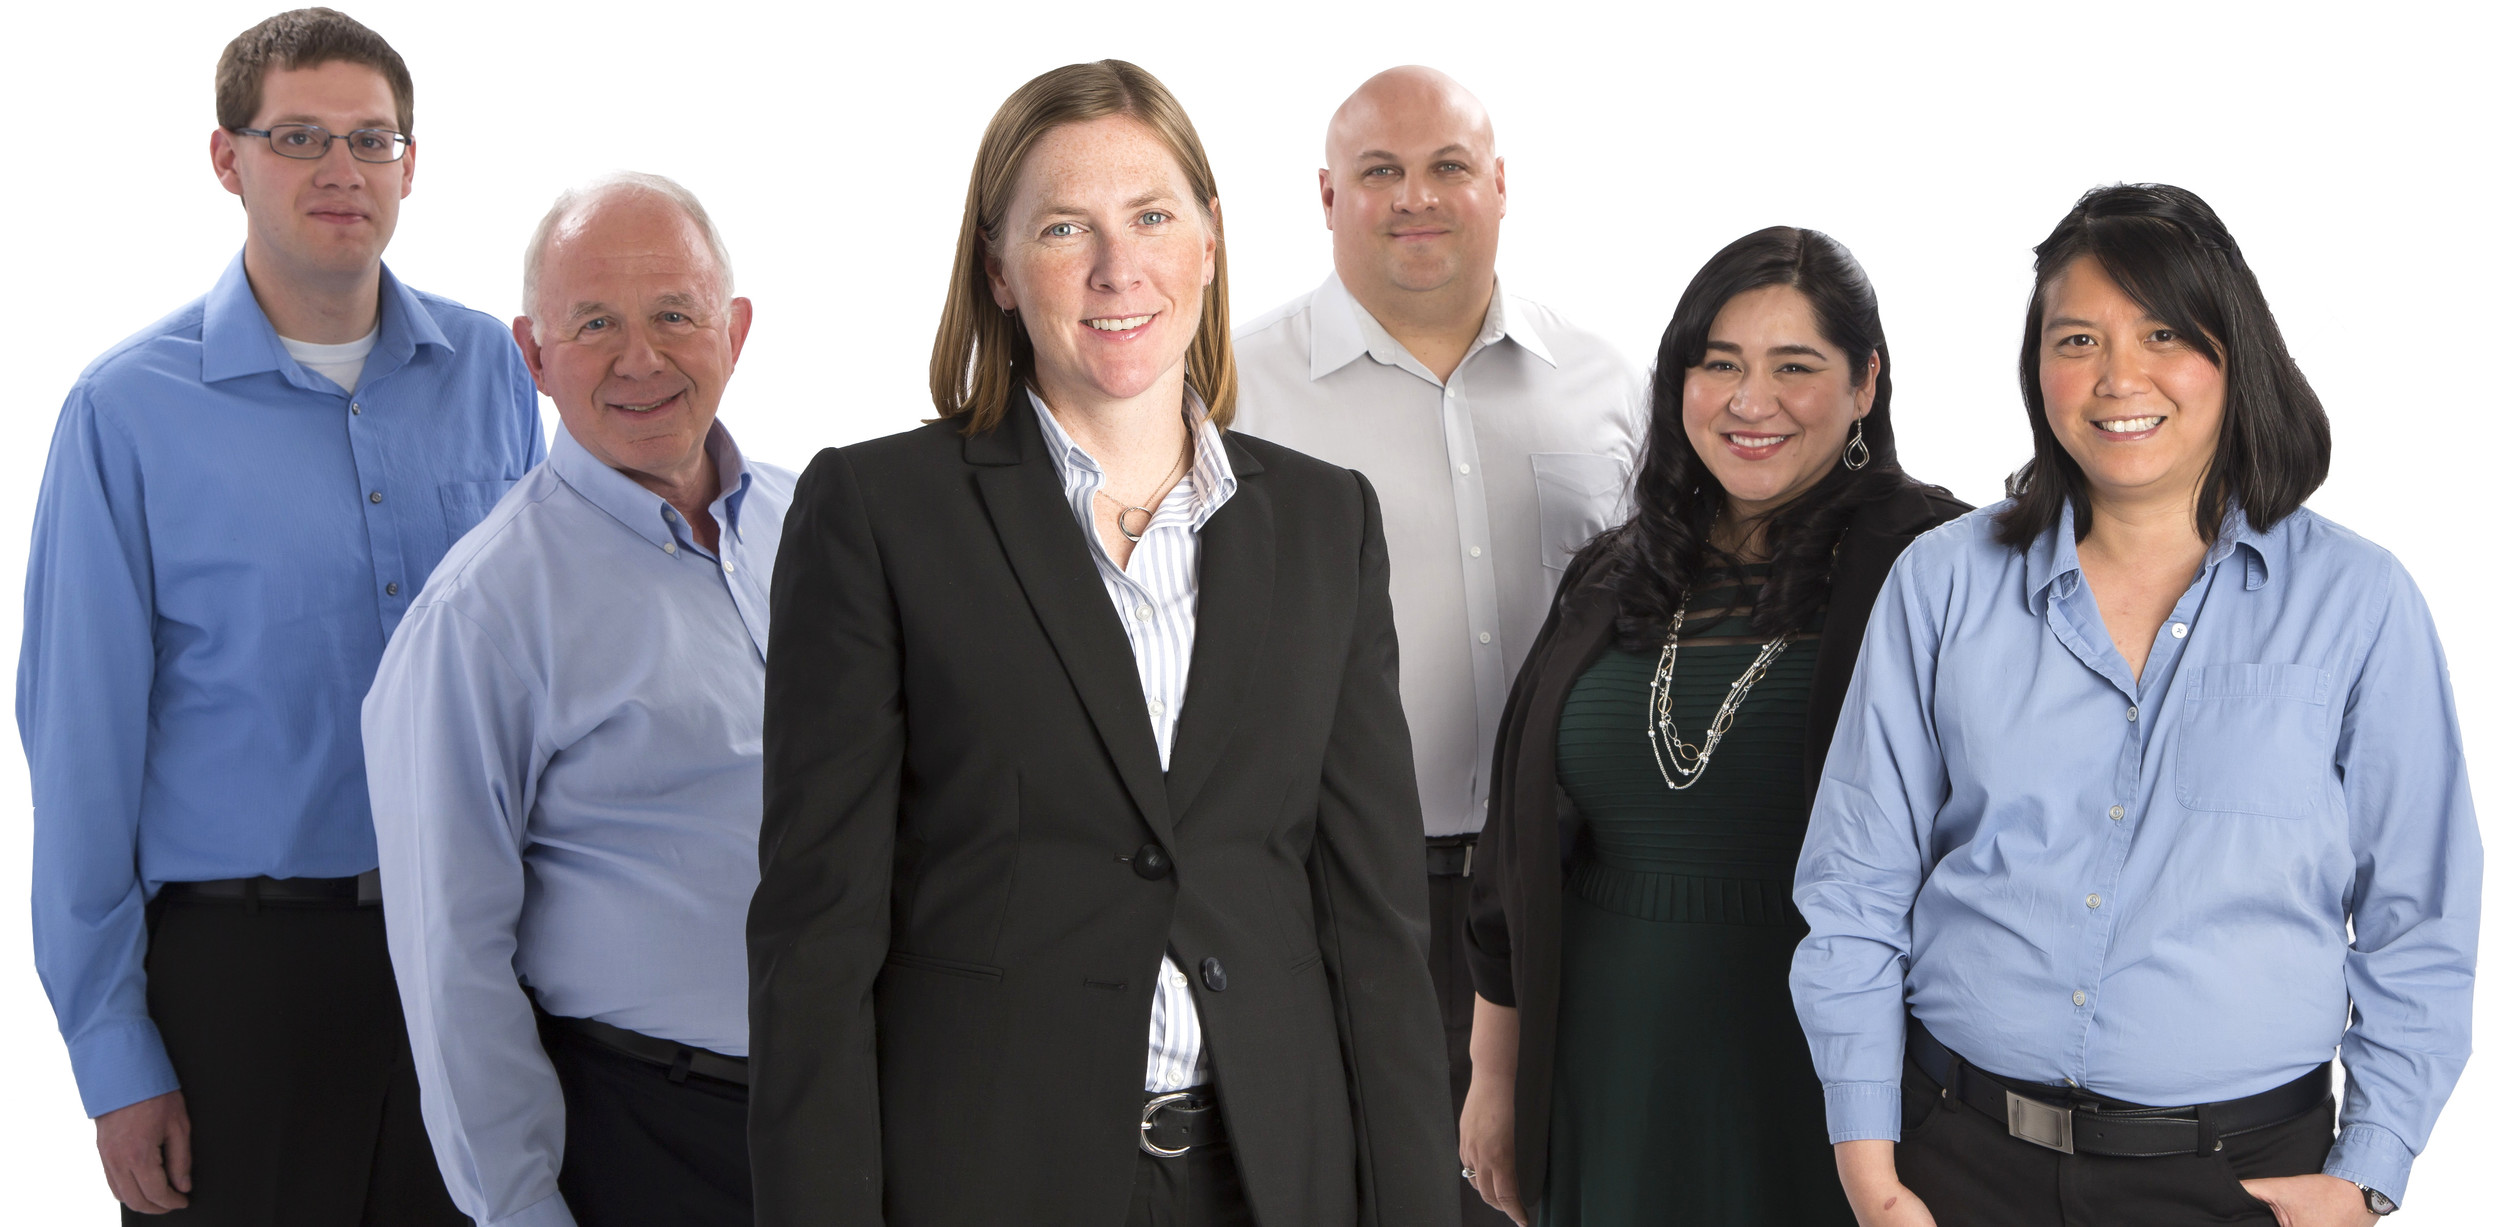 Neumont University's Office of Student Affairs includes (from left to right) Michael Michaud, Larry Crandall, Erin McCormack, John Peppinger, Corrine Padilla, and Alice Nguyen.